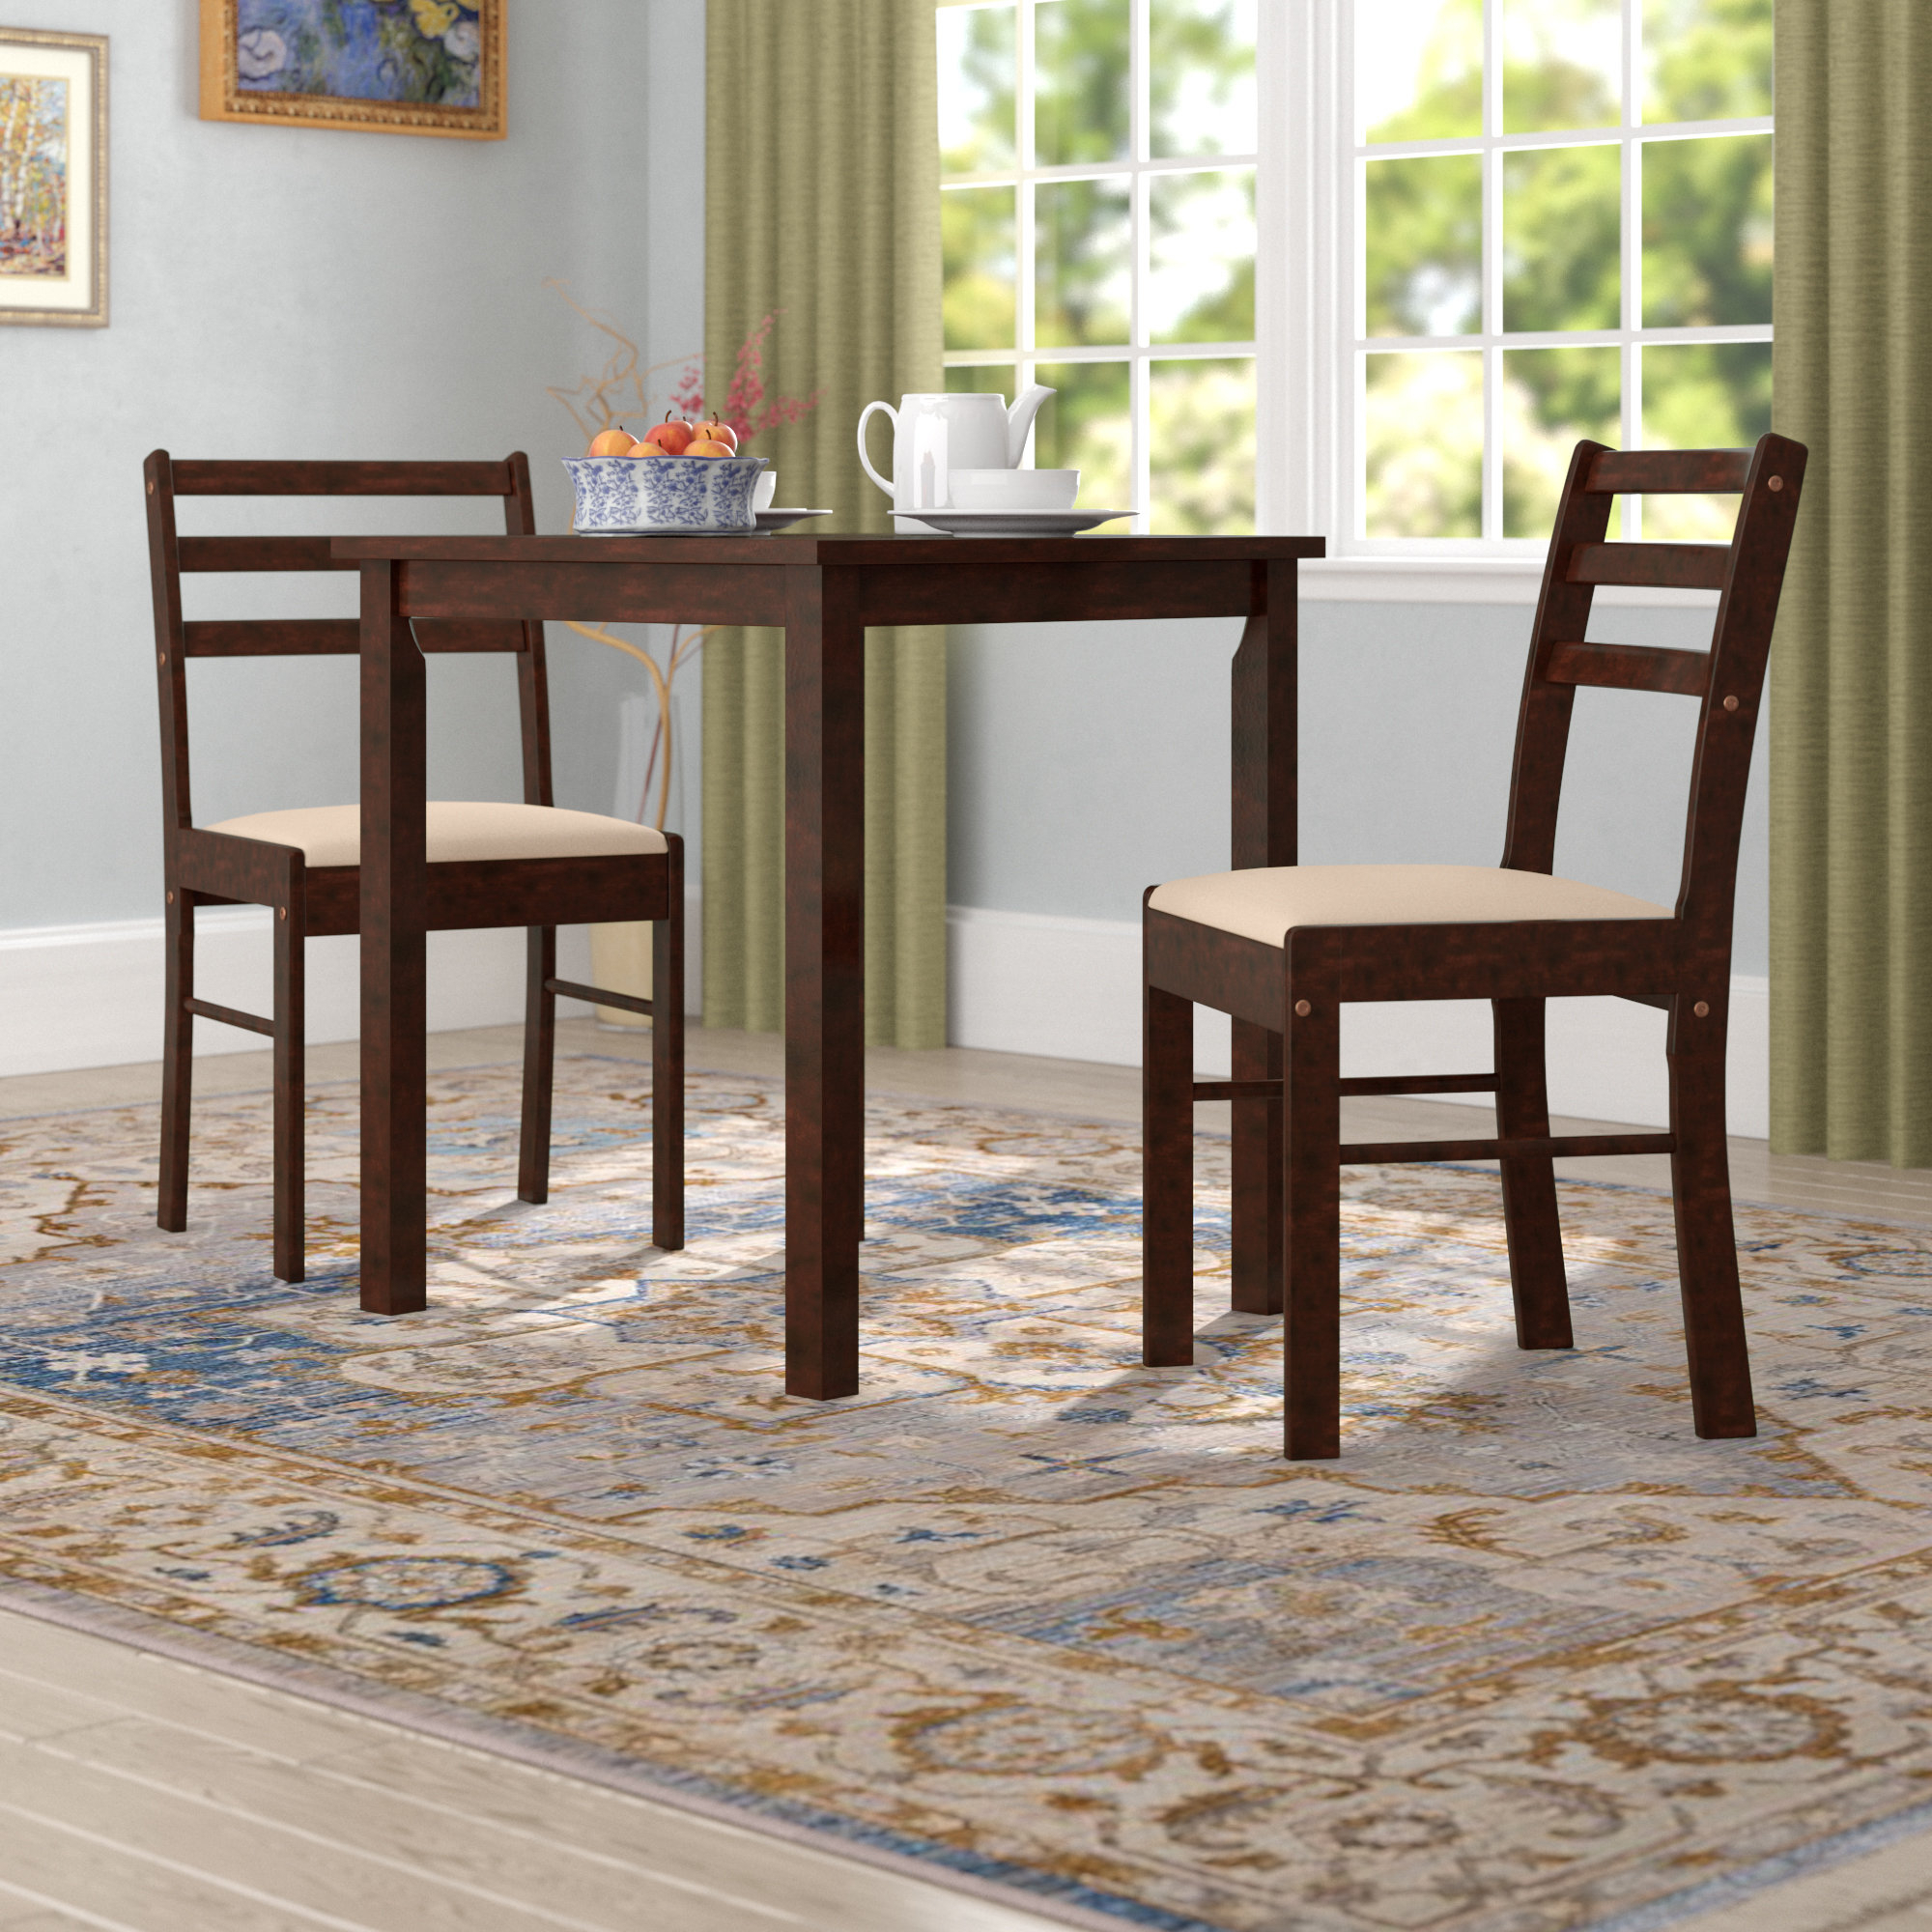 Current Winston Porter Clinger Pilaster Designs 3 Piece Dining Set & Reviews Within Kinsler 3 Piece Bistro Sets (View 9 of 25)